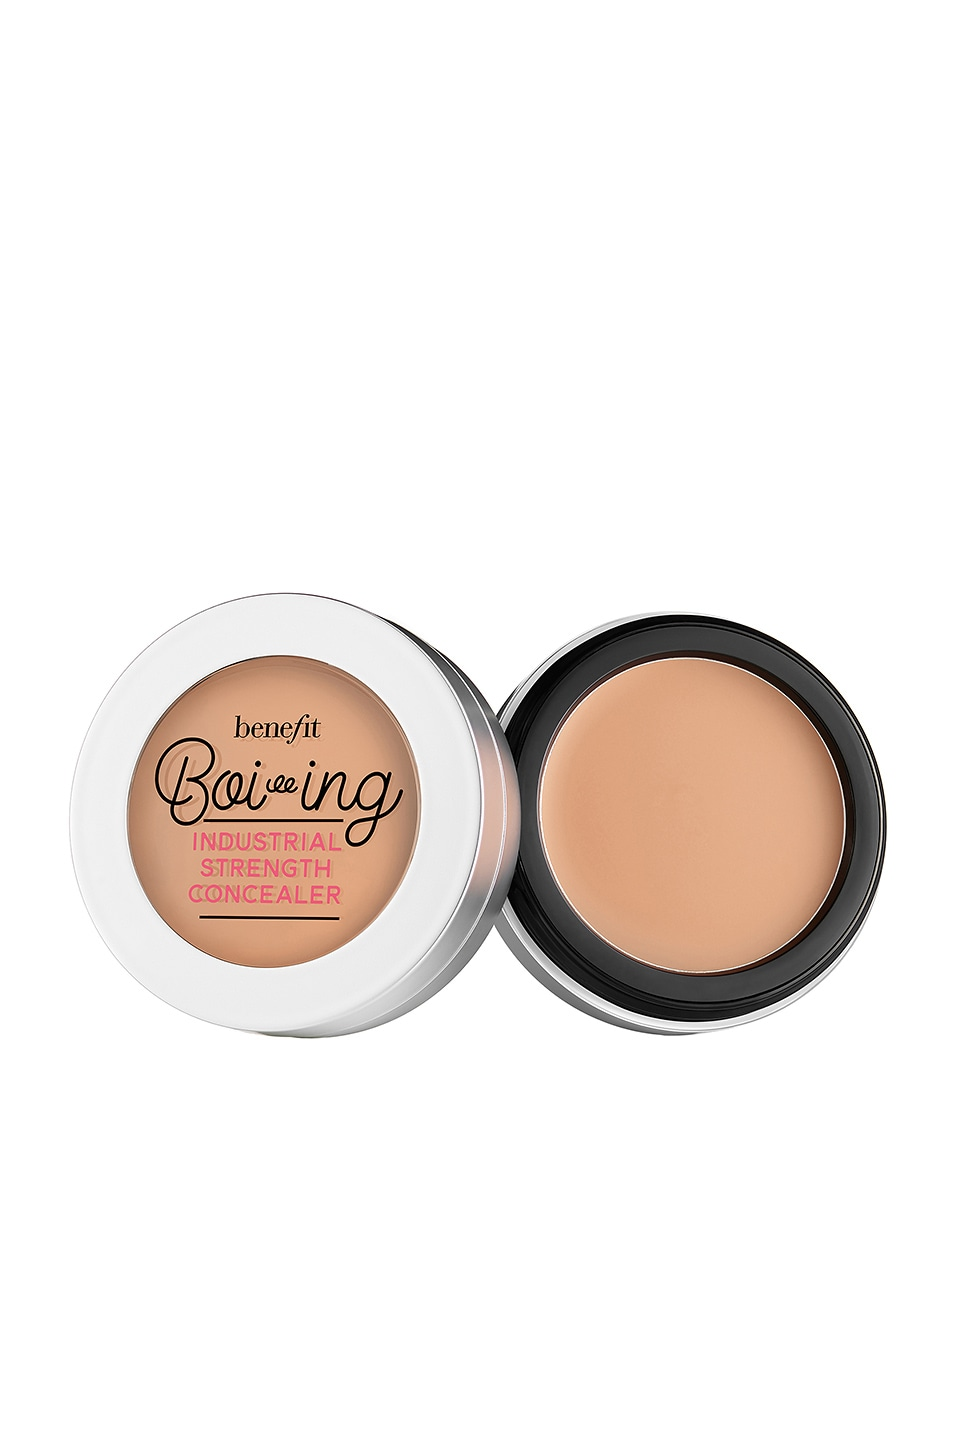 Benefit Cosmetics Boi-ing Industrial Strength Concealer in Shade 04